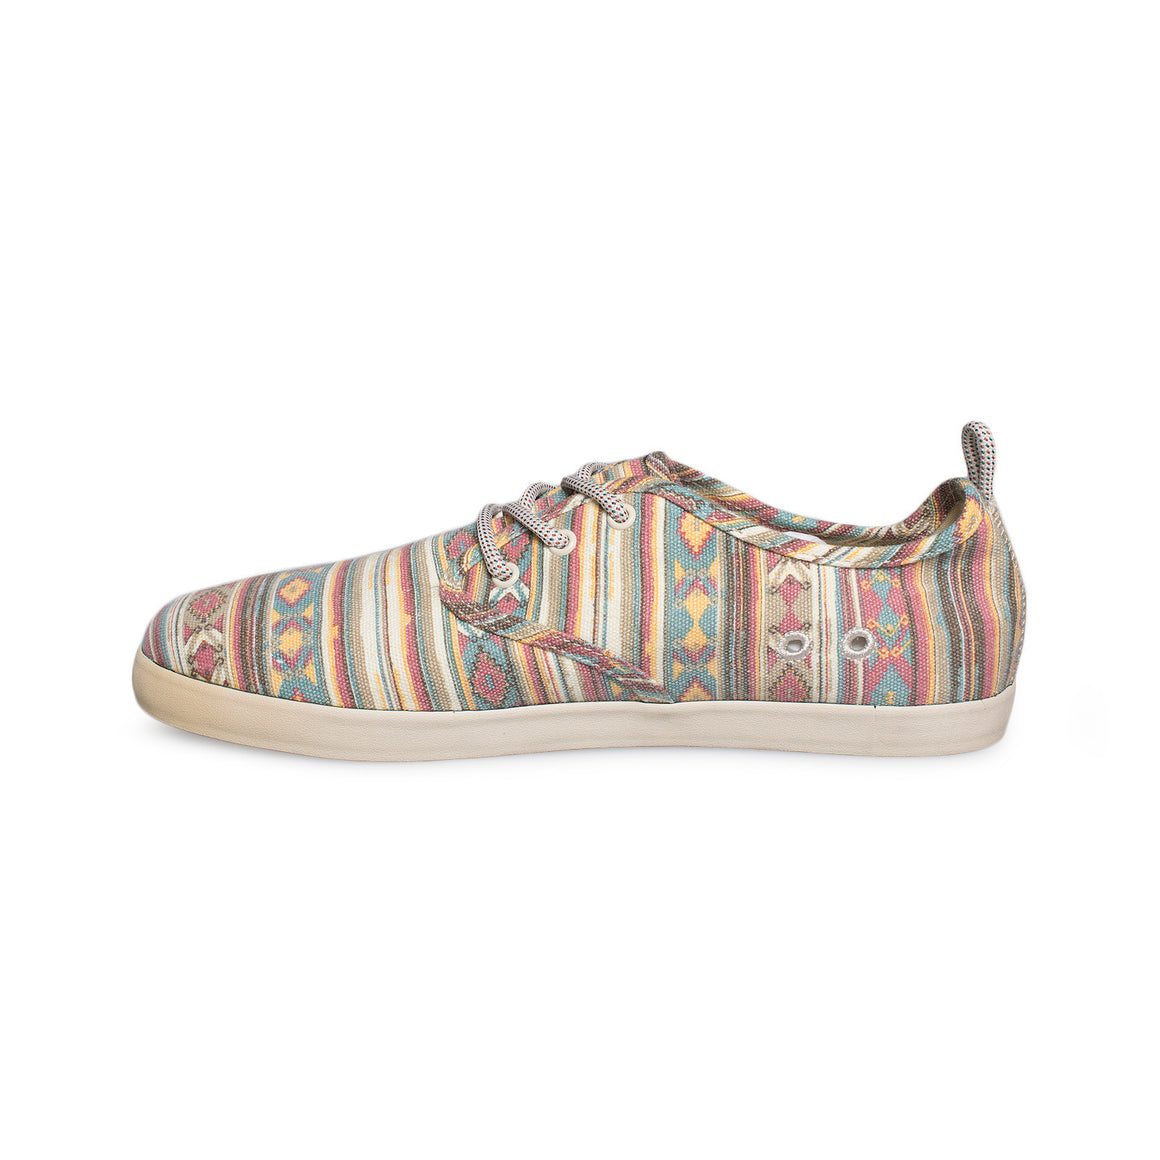 SANUK Guide Funk Santafe blanket Shoes - Men's